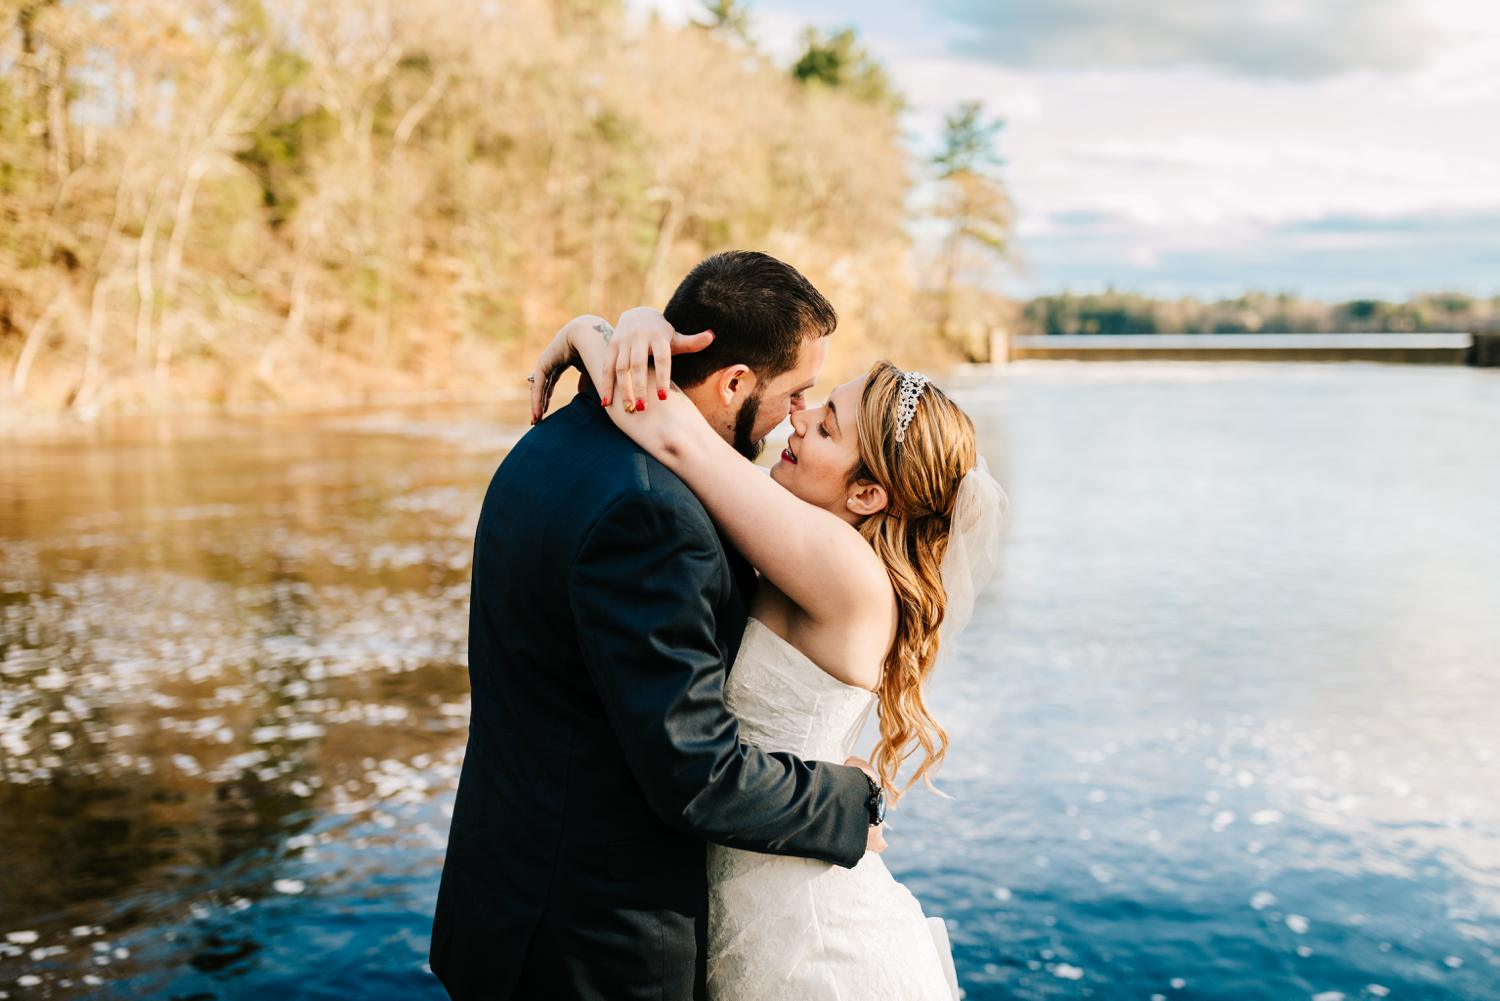 Tattooed bride and groom about to kiss at lake